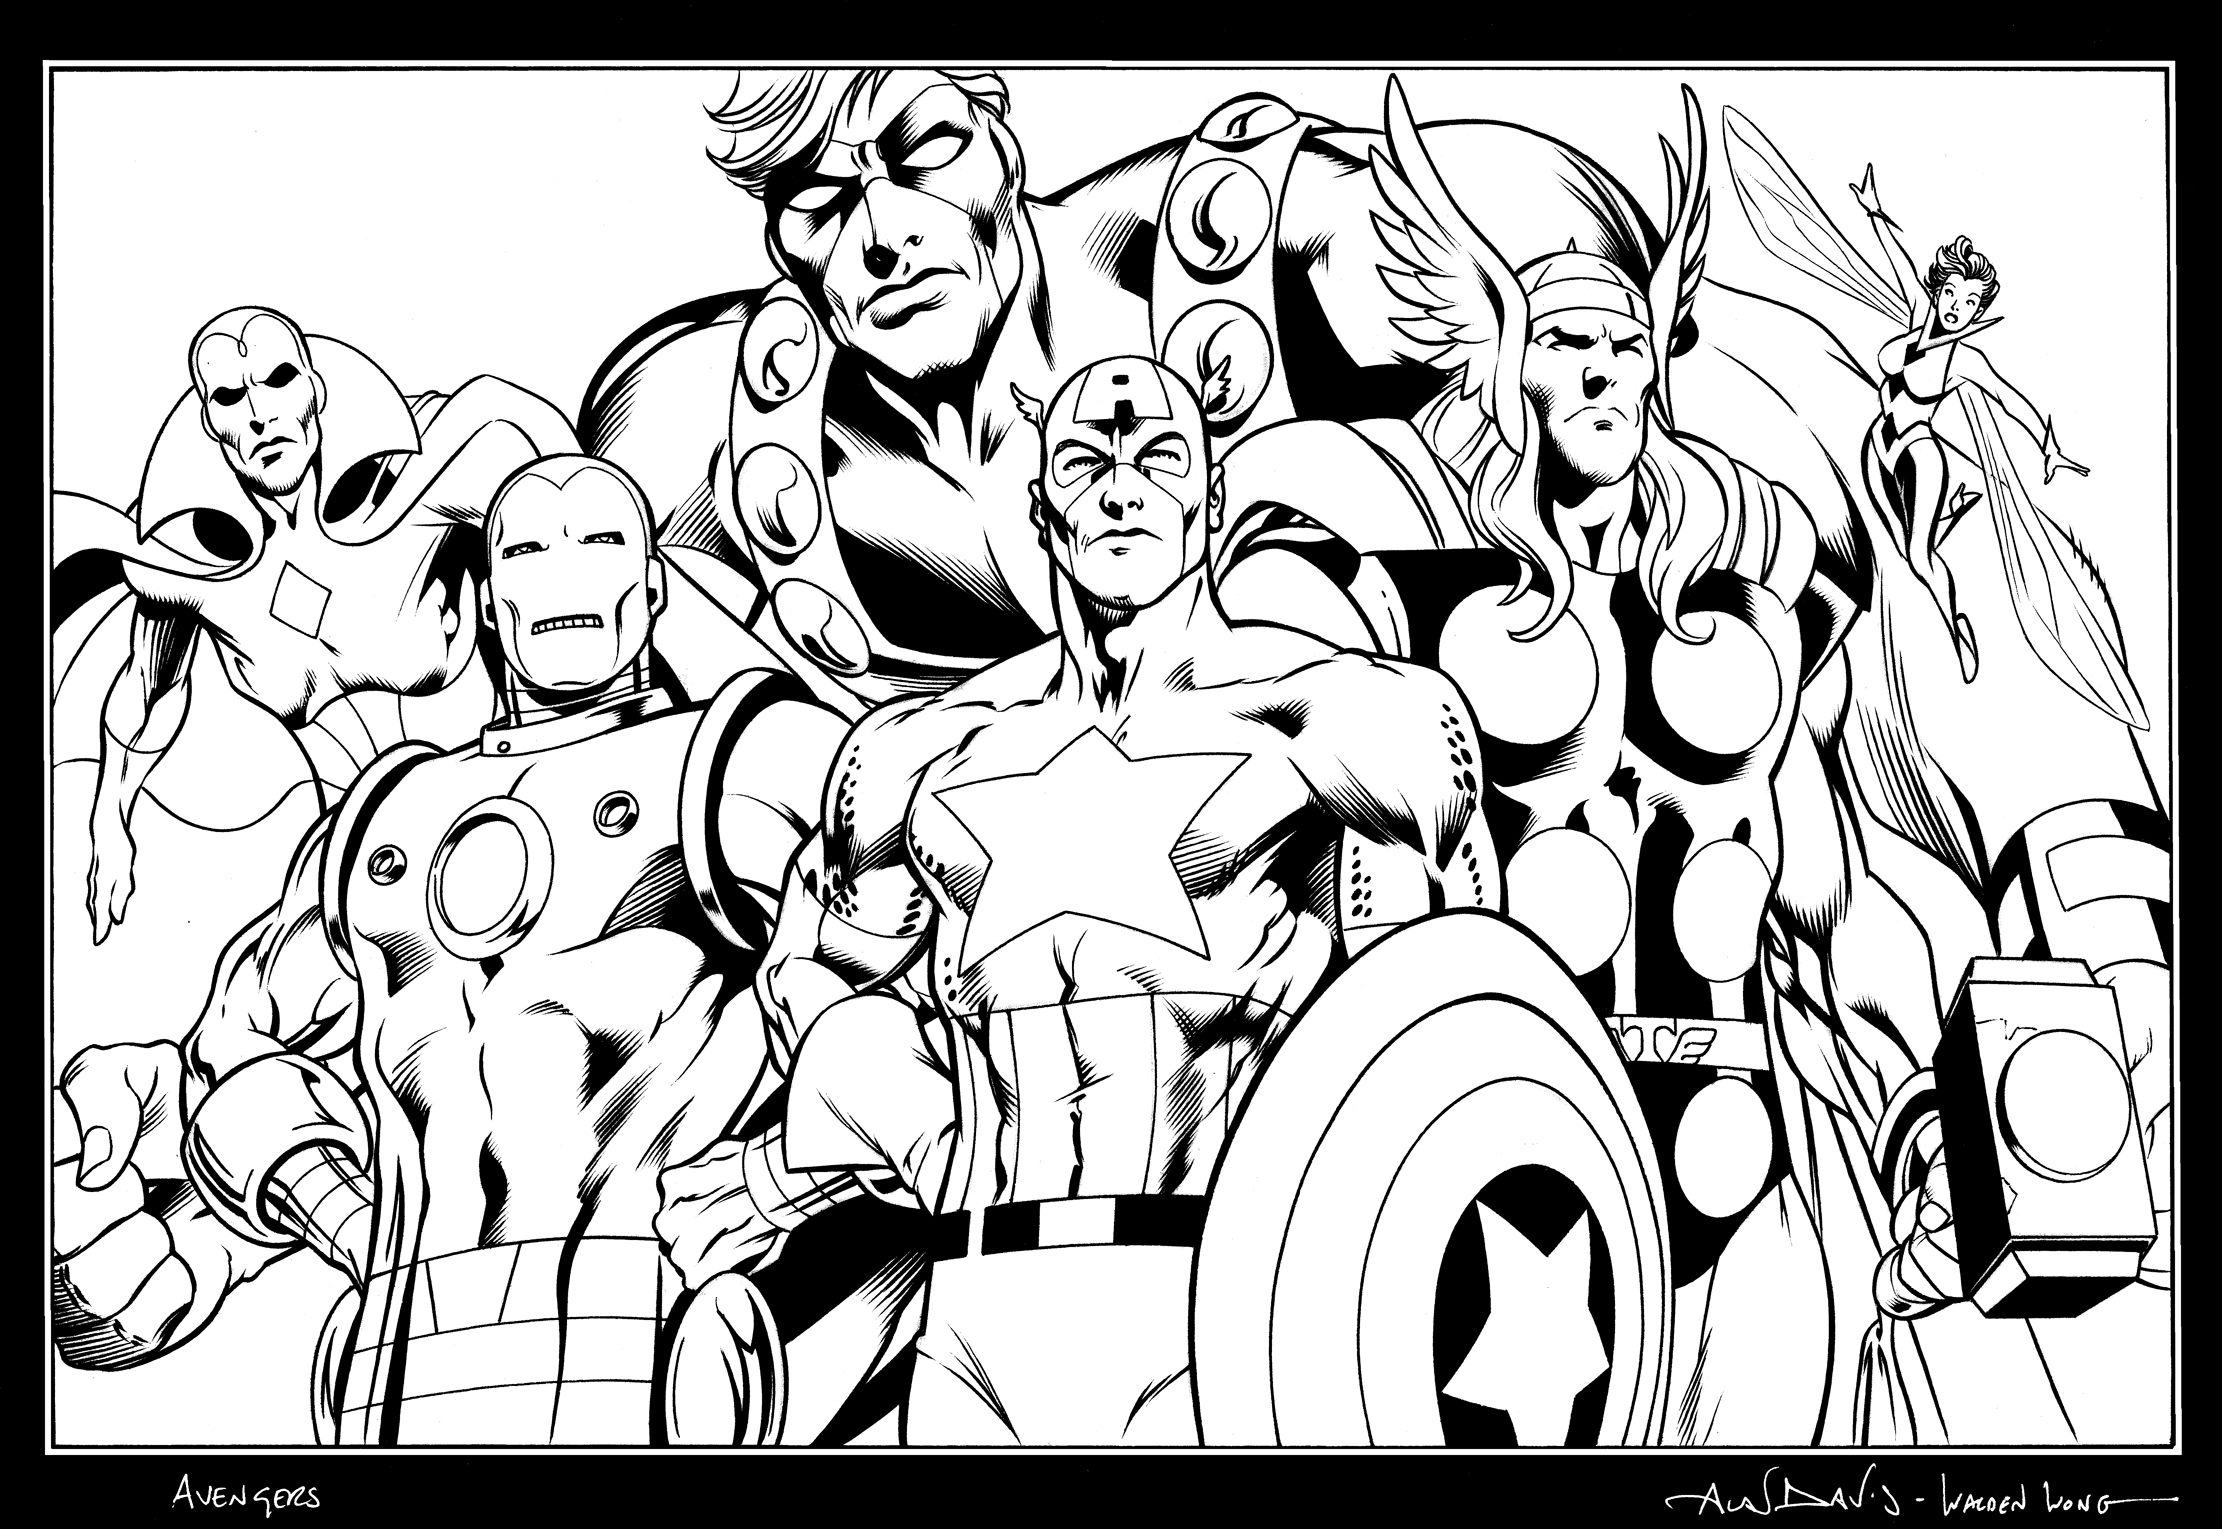 cute avengers coloring pages van orton 700958 with images avengers coloring avengers coloring pages cute